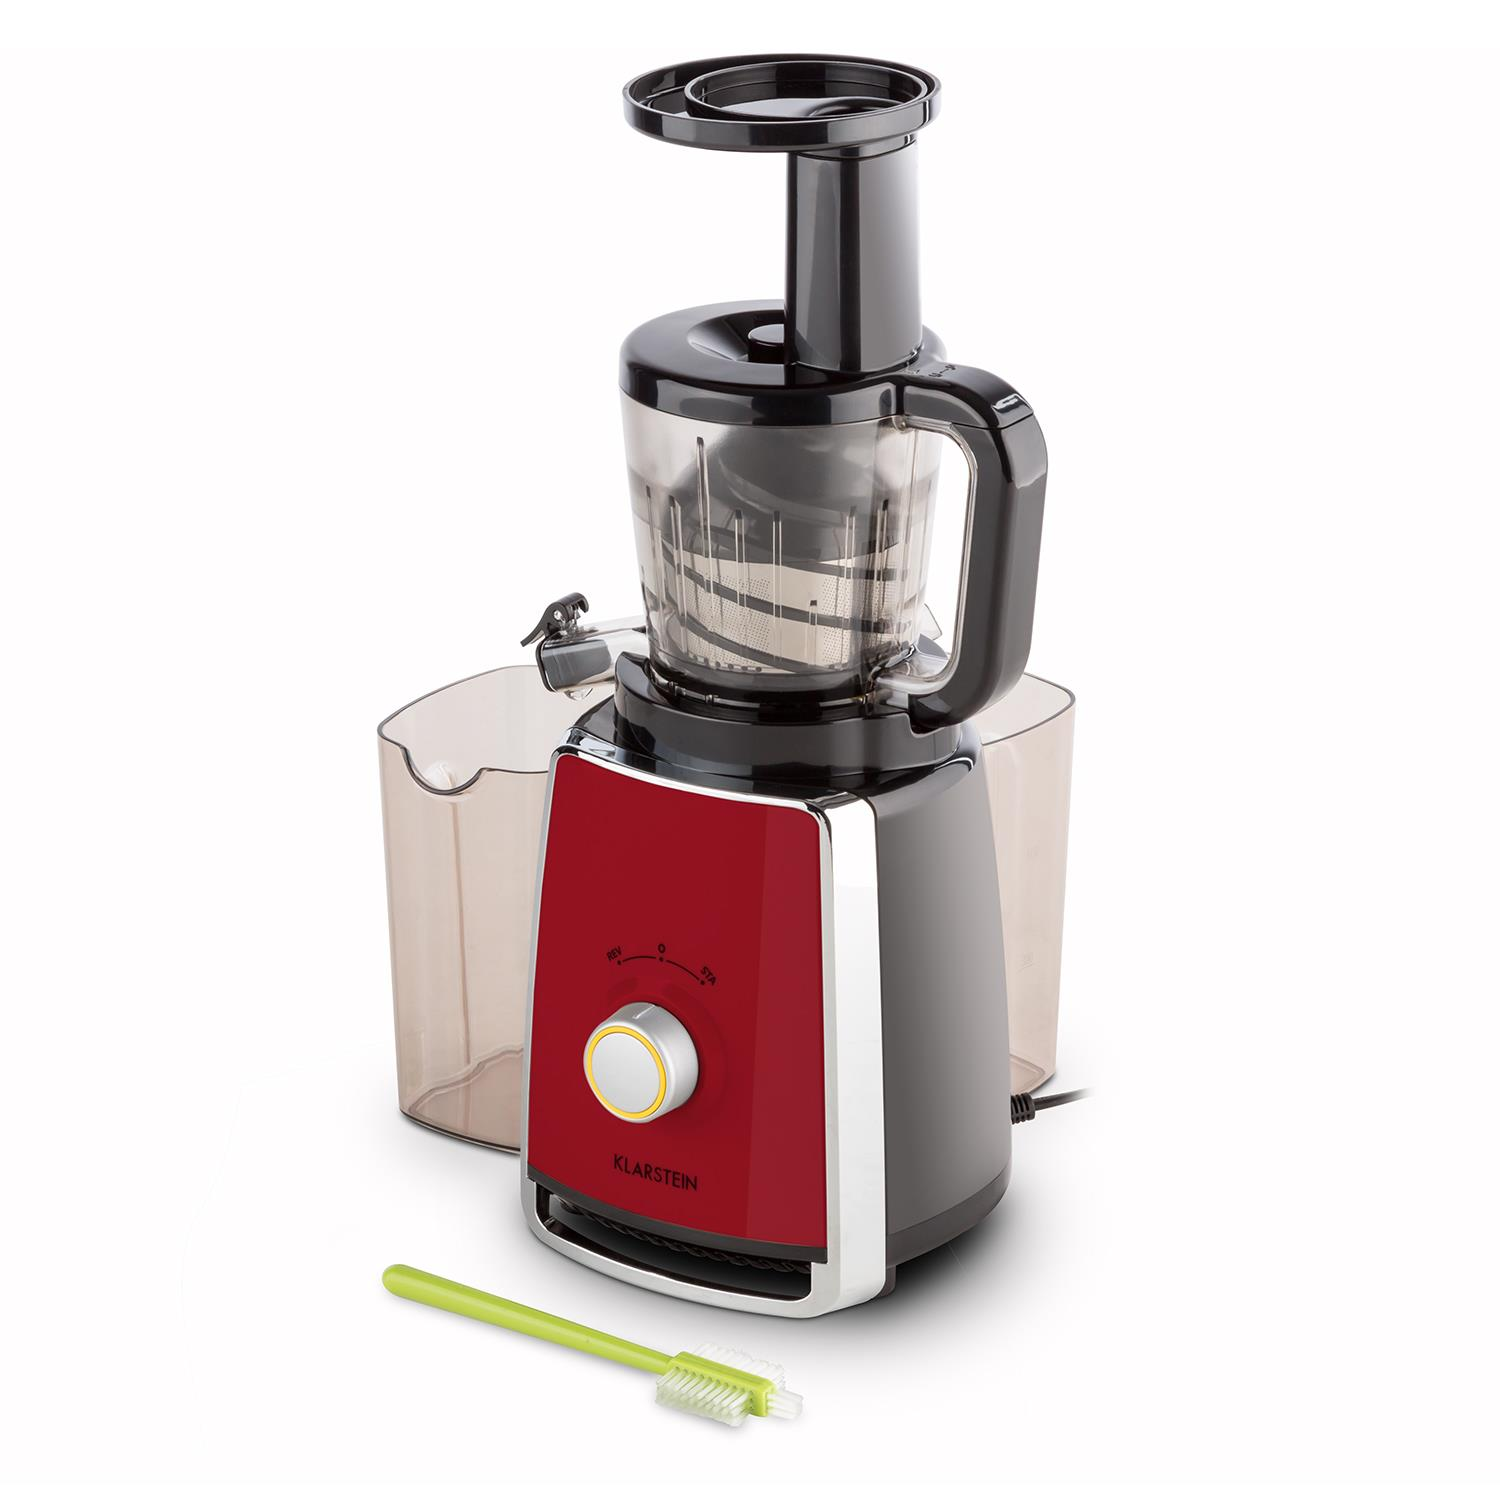 Klarstein Slow Juicer 400w : KLARSTEIN SLOW JUICER ELECTRIC TABLE TOP KITCHEN MACHINE COLD PRESS FRUIT JUICE eBay